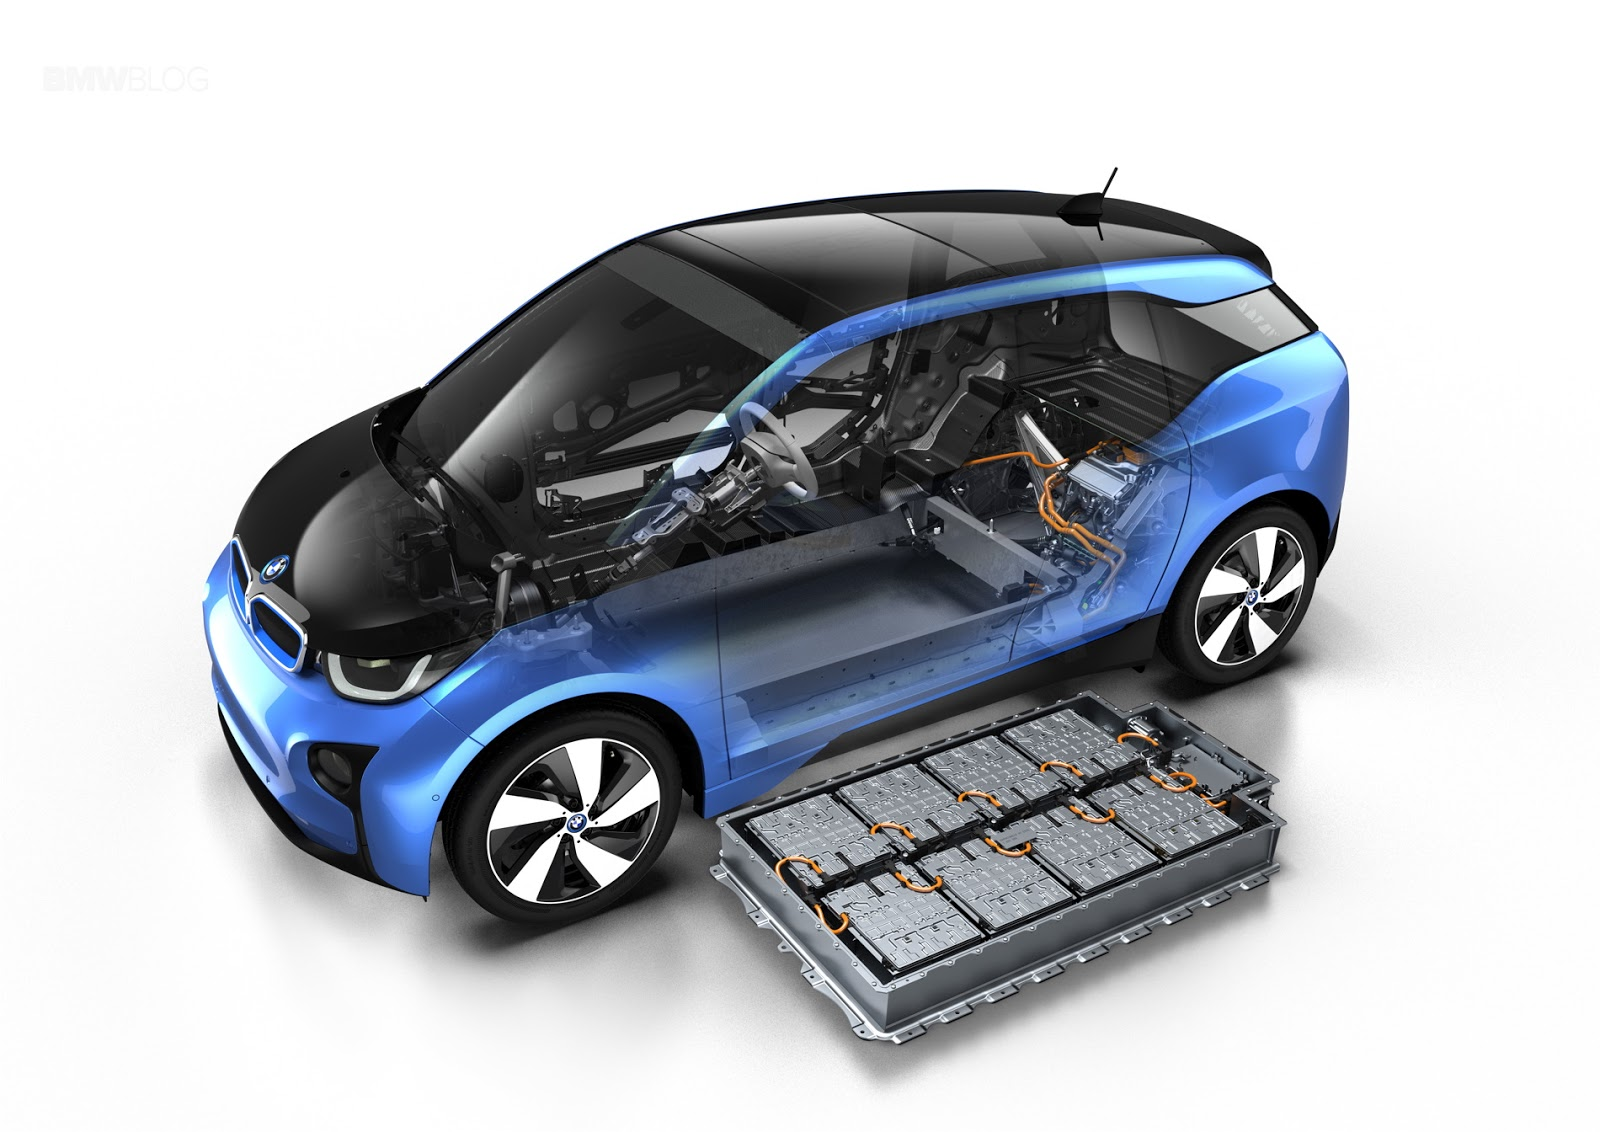 The Electric BMW i3